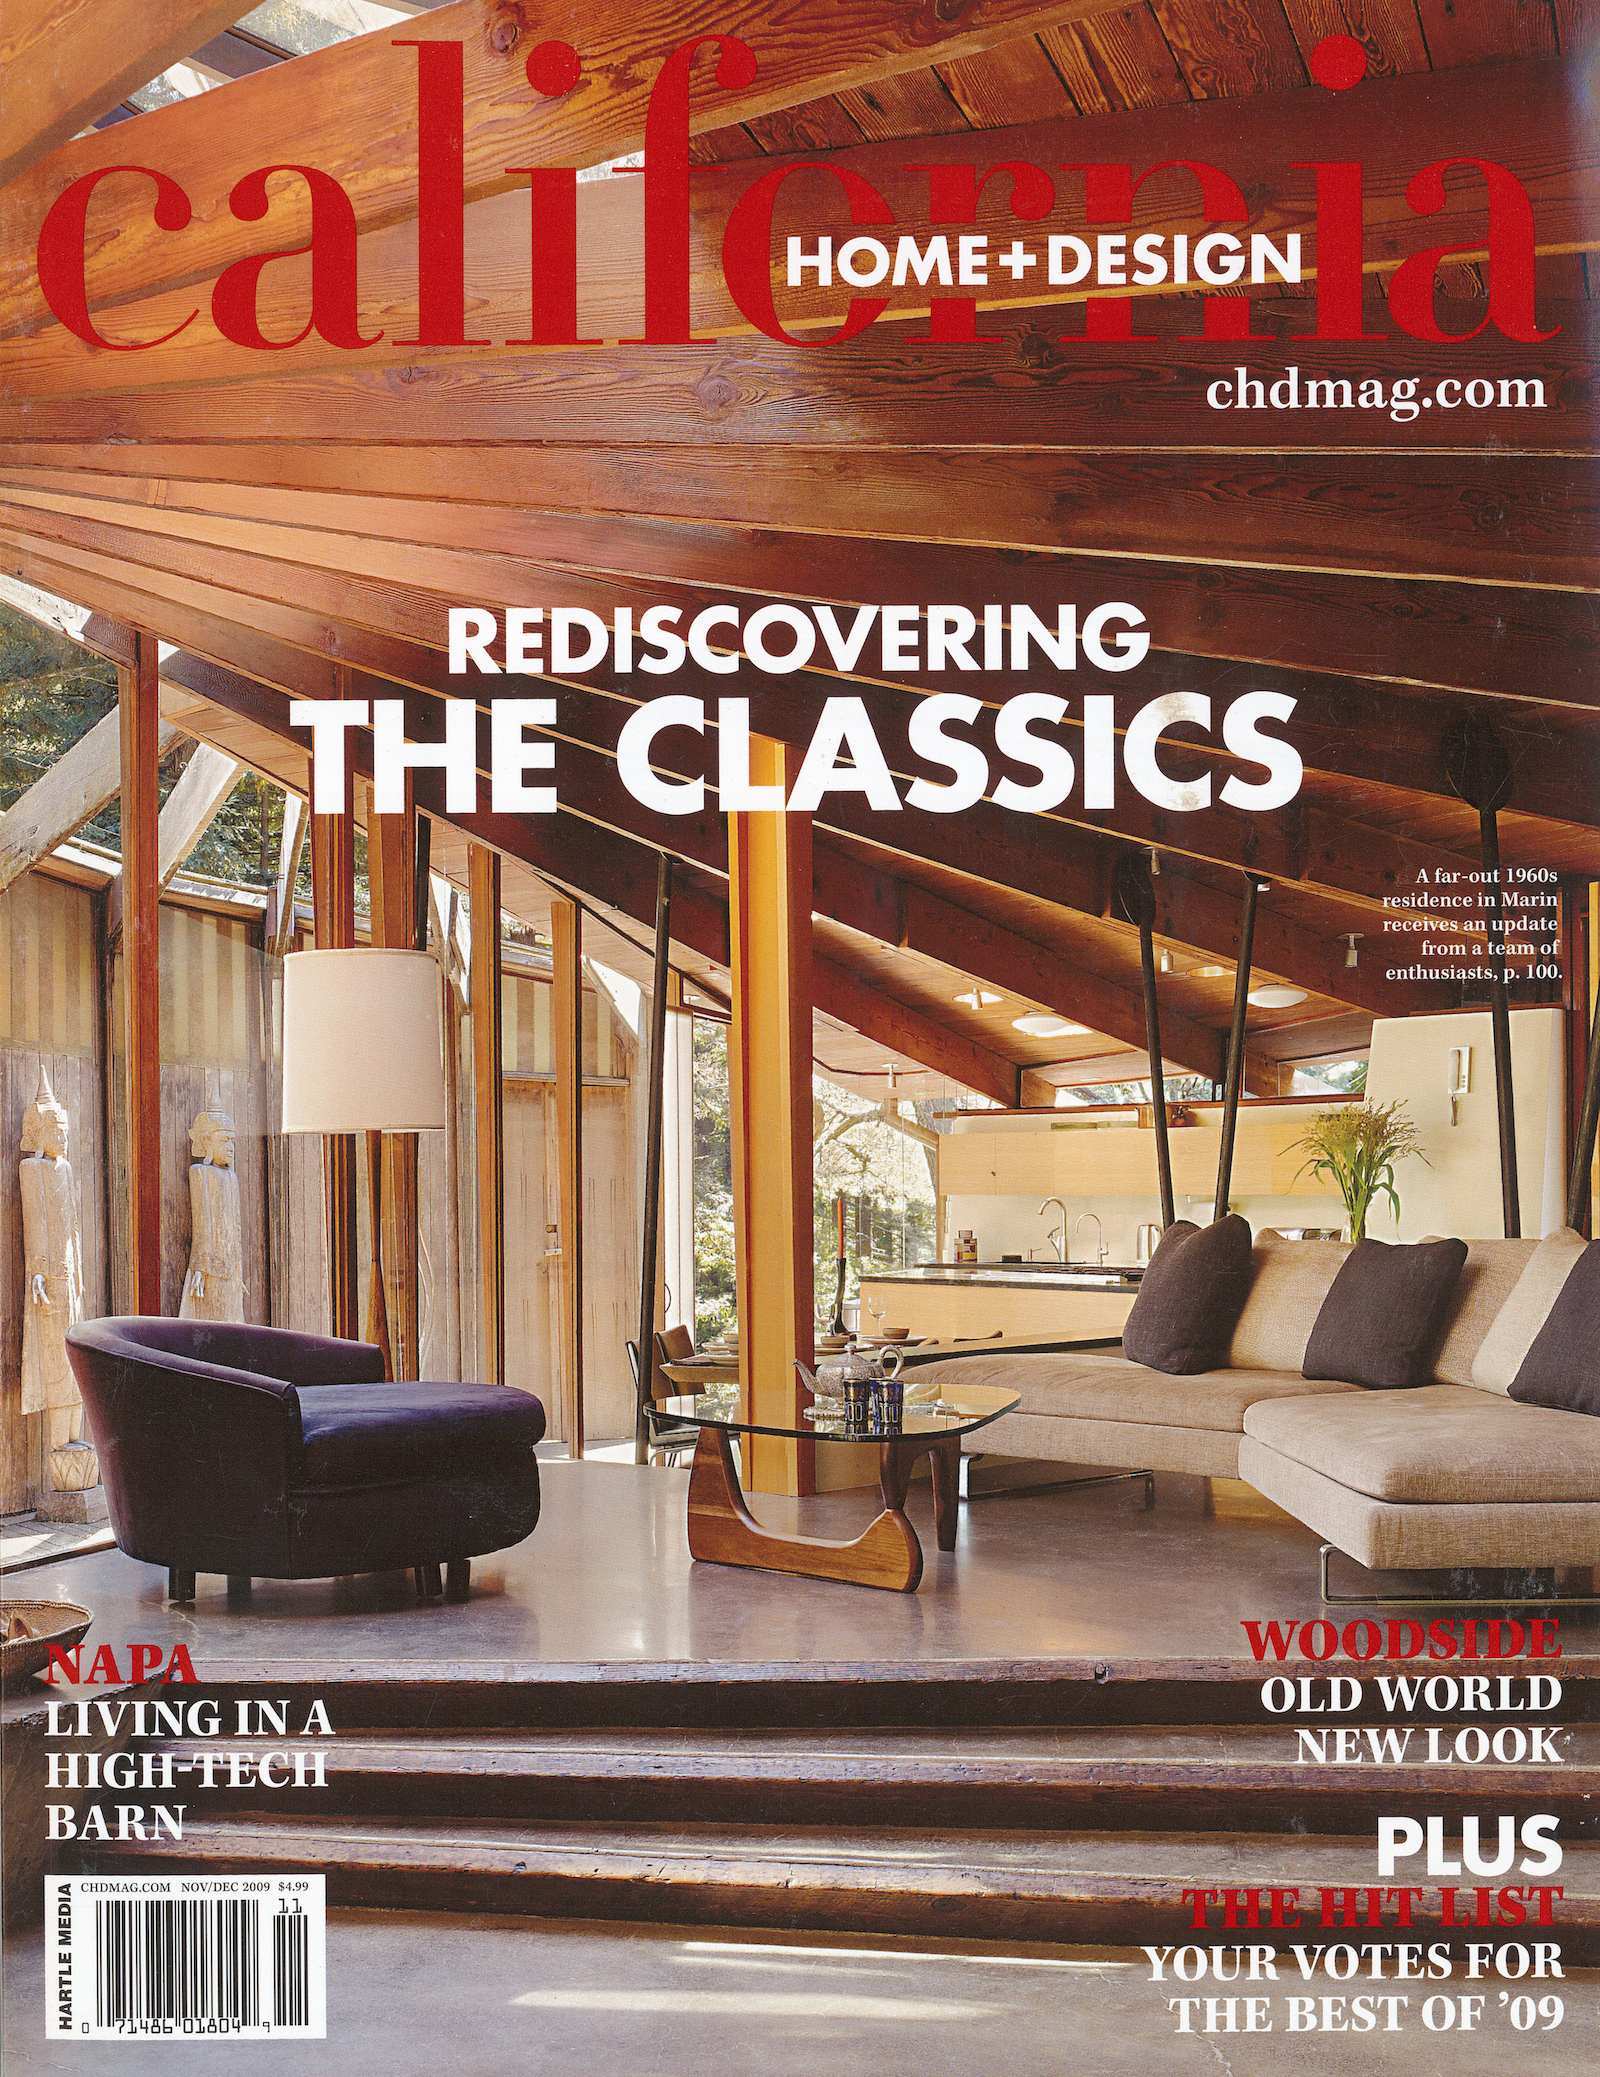 CA Home & Design Cover.jpg